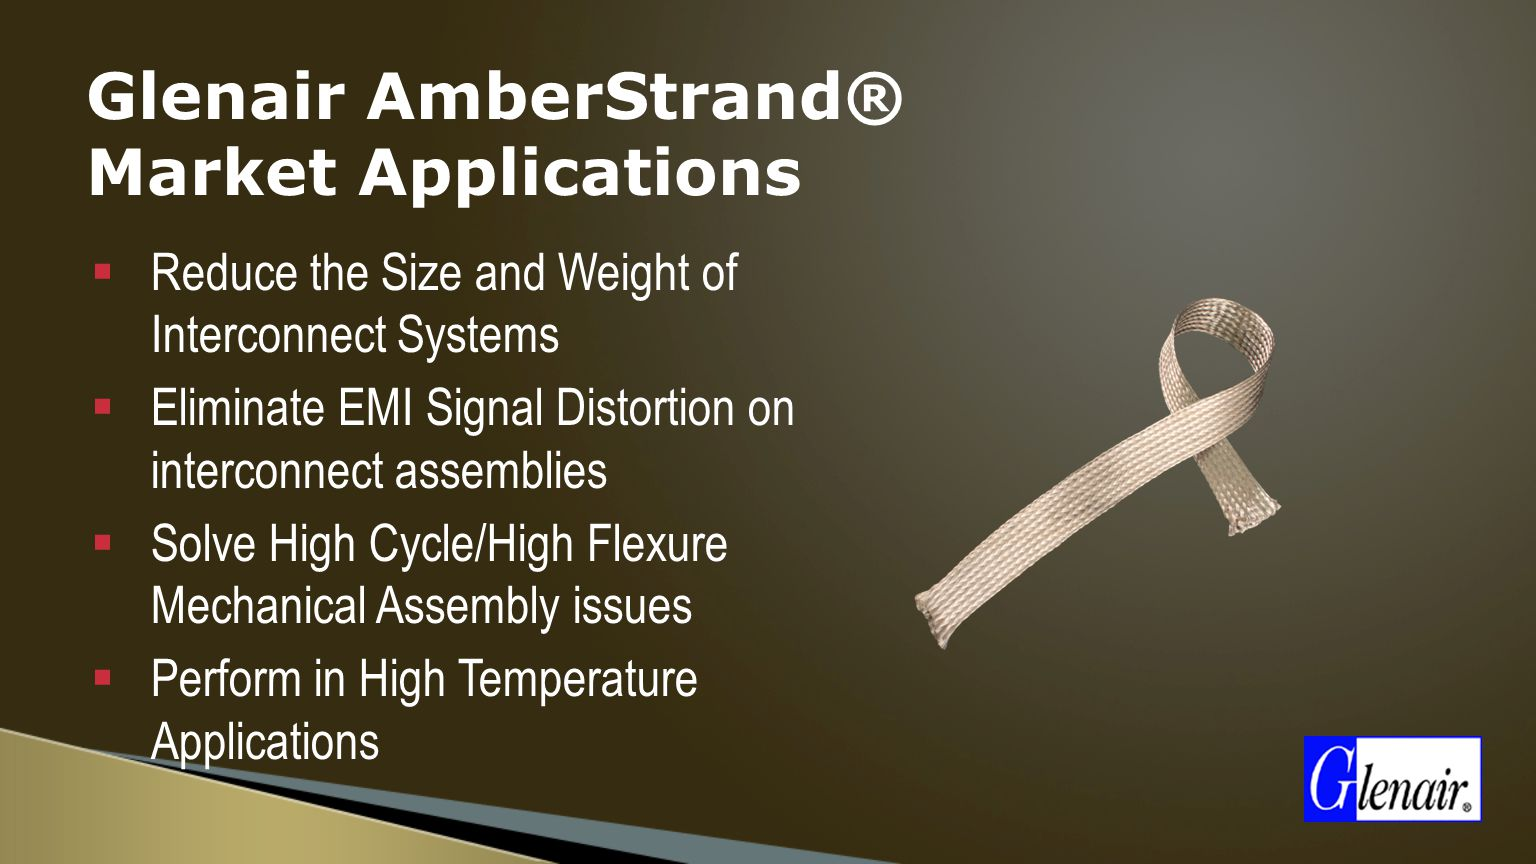 Glenair AmberStrand® Market Applications  Reduce the Size and Weight of Interconnect Systems  Eliminate EMI Signal Distortion on interconnect assemblies  Solve High Cycle/High Flexure Mechanical Assembly issues  Perform in High Temperature Applications